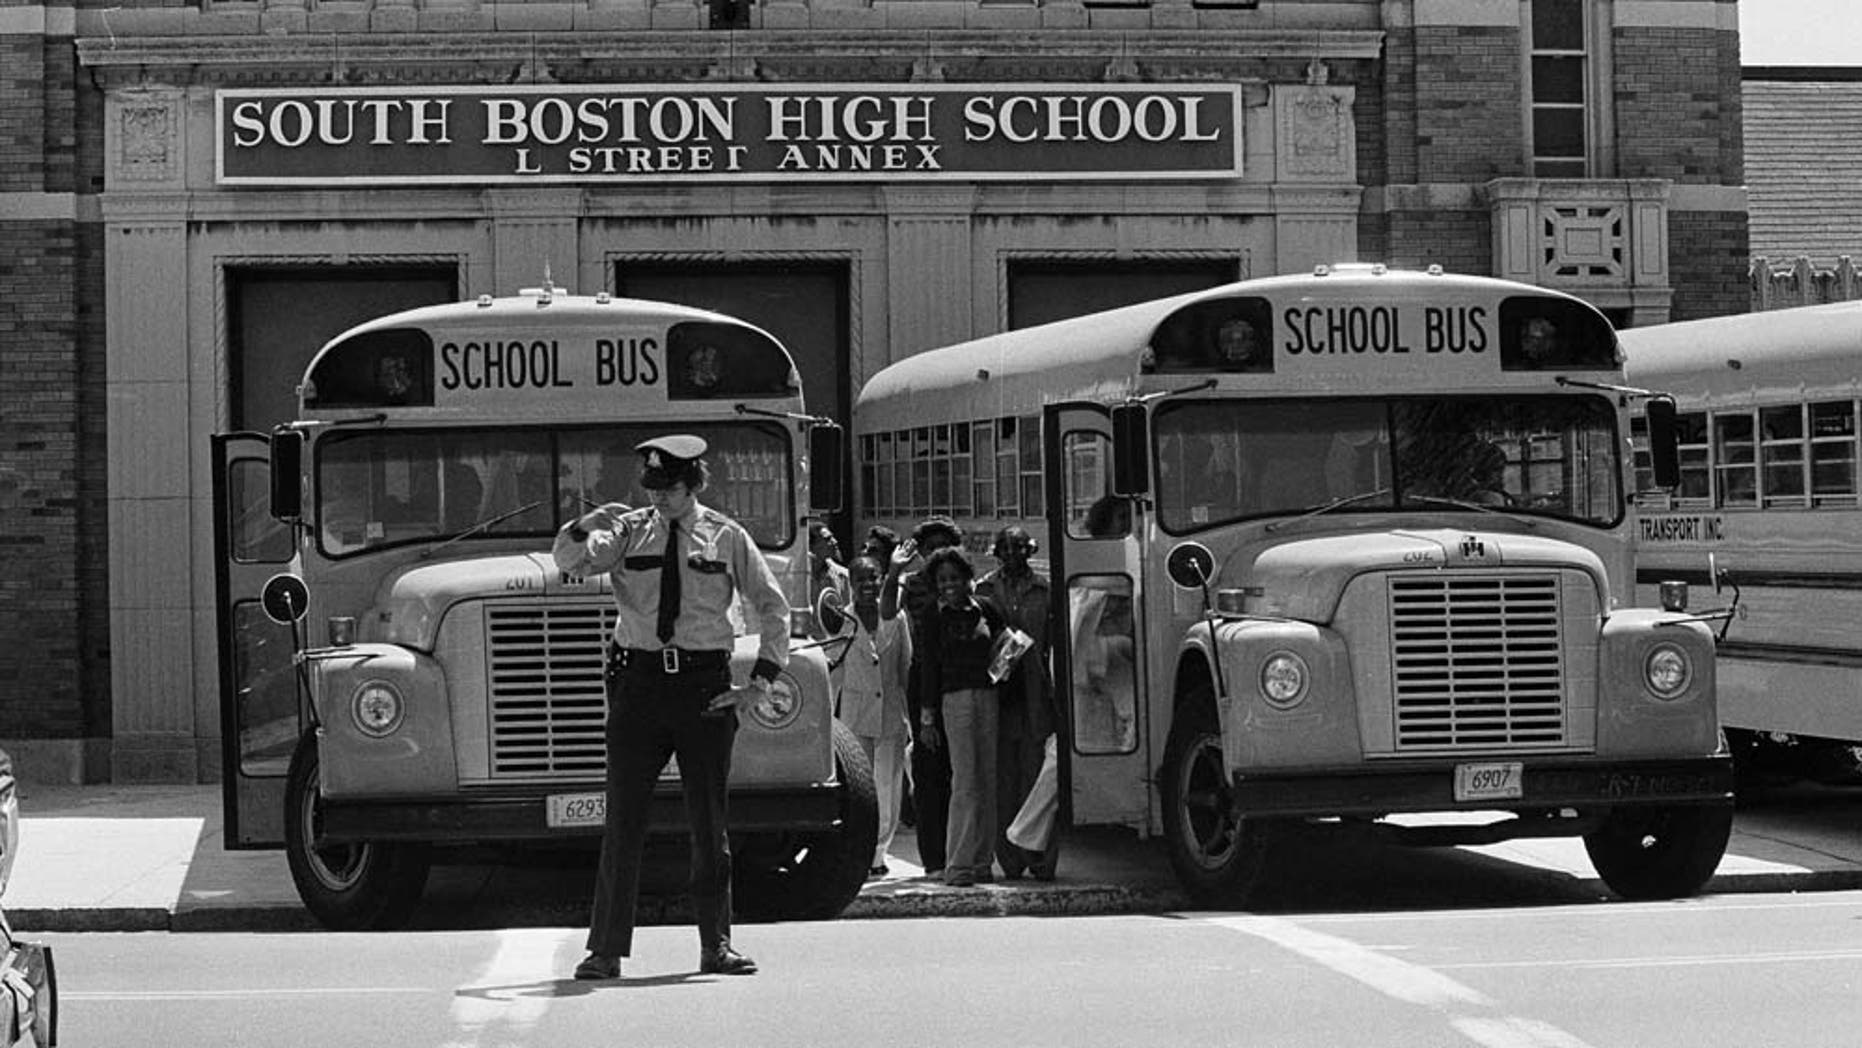 FILE - In this May 30, 1975 file photo black students attending South Boston High School climb into buses backed up close to the school's doors that will take them home after classes. In front stands one of the policemen who have been needed to keep the peace at Boston schools since September when the city started a court-ordered school integration program requiring the busing of 18 percent of public school students. (AP Photo/J. Walter Green)